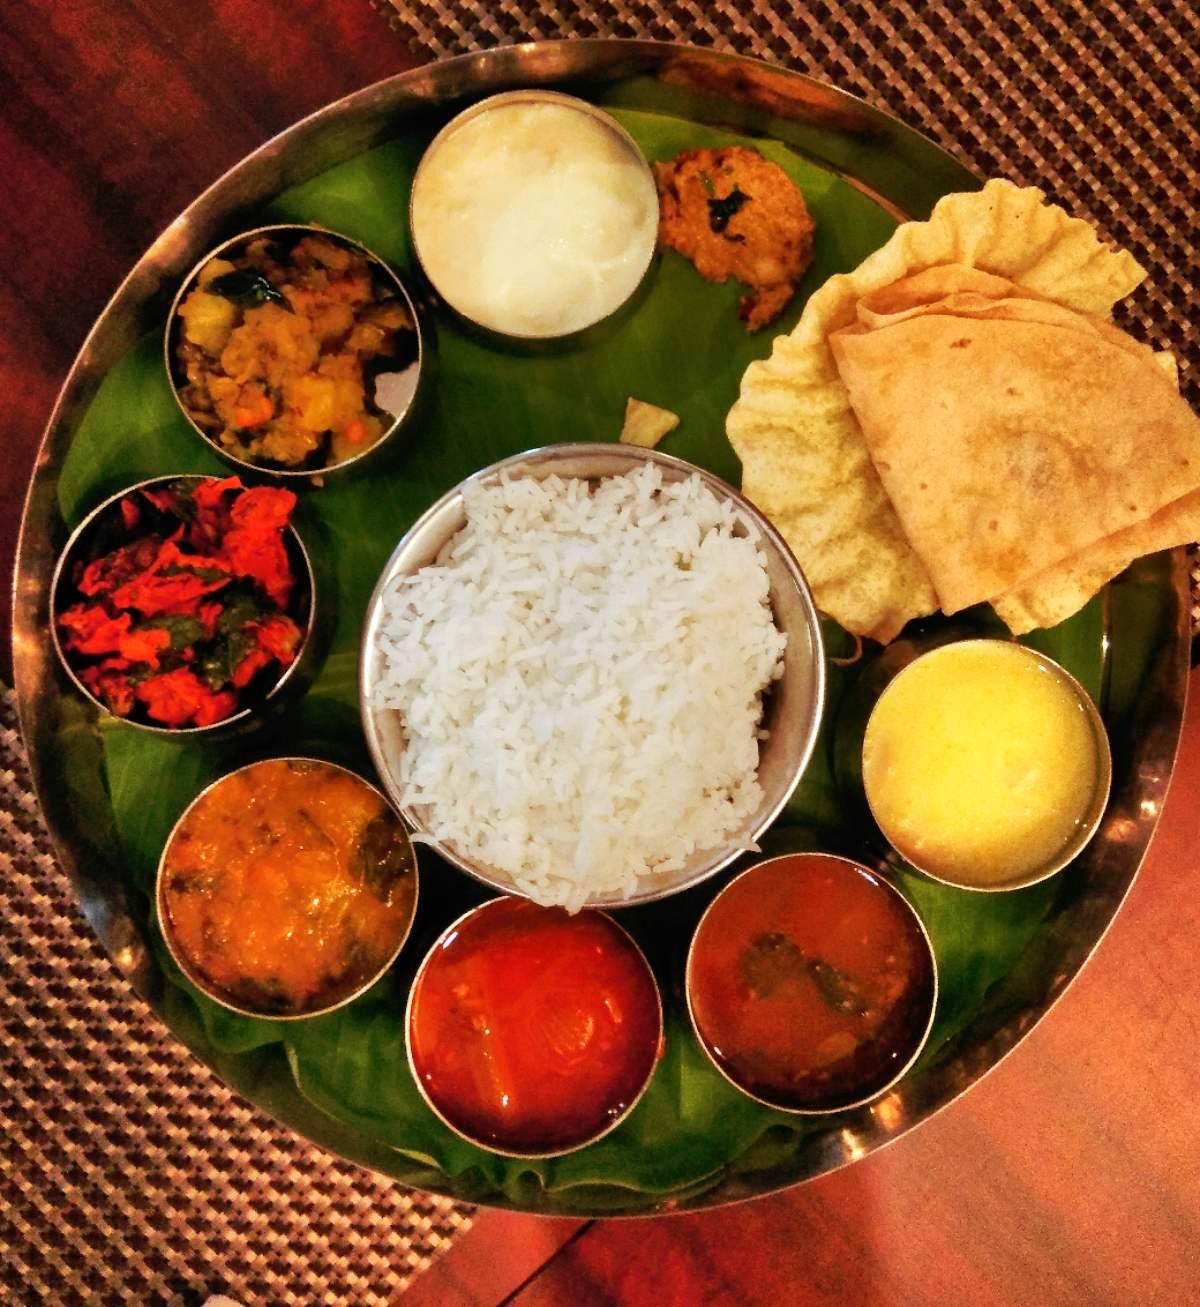 Dish,Food,Cuisine,Meal,Ingredient,Comfort food,Andhra food,Tamil food,Nasi liwet,Indian cuisine